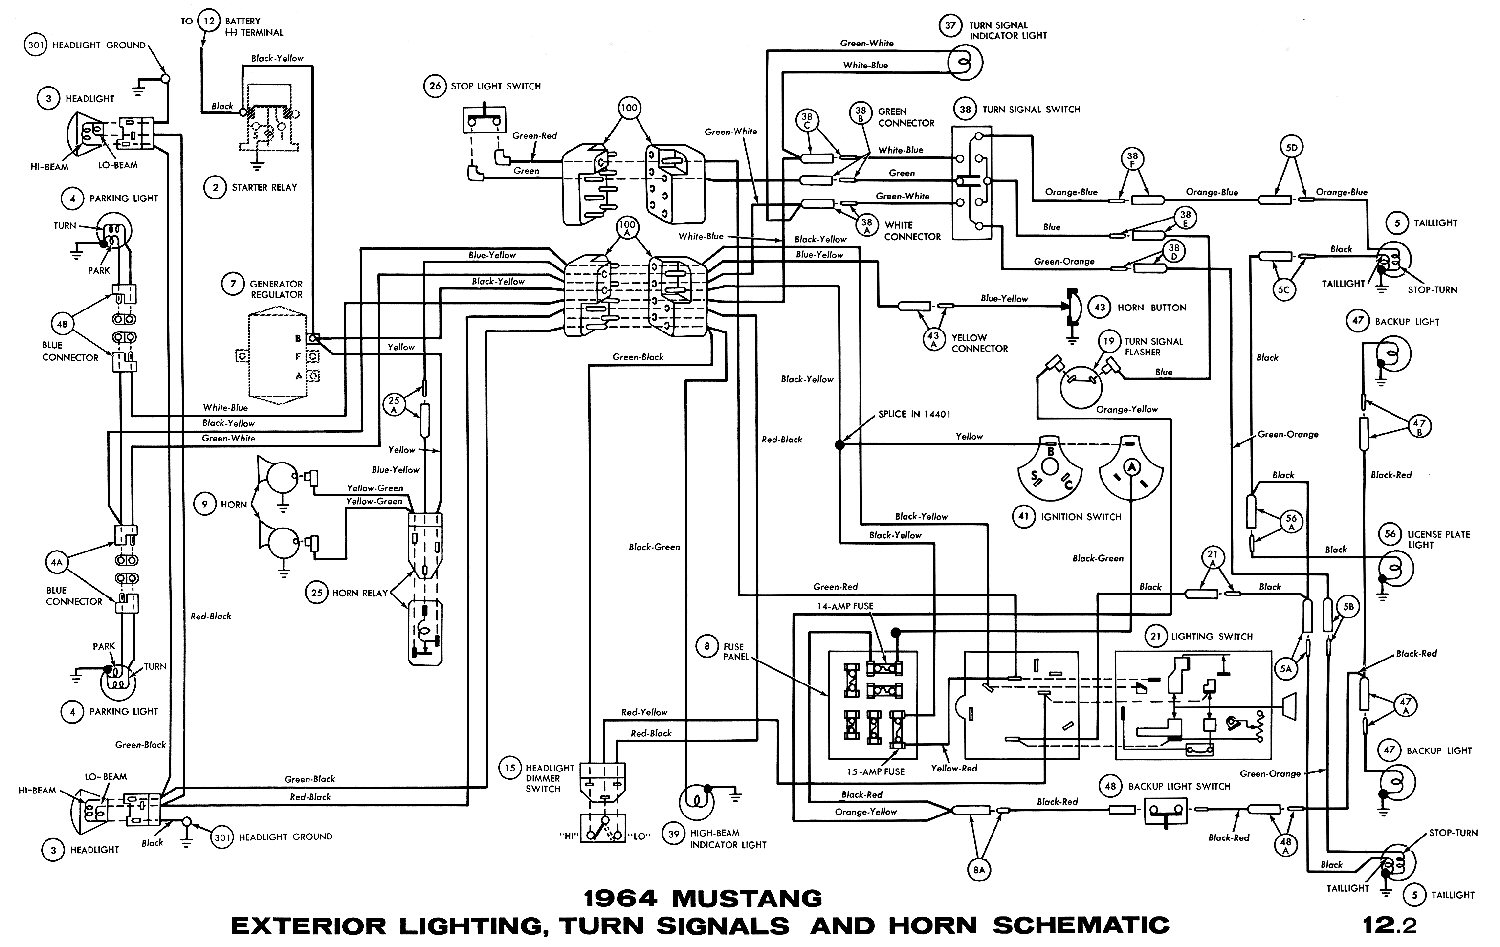 1965 Mustang Marker Light Wiring Diagram Automotive Wiring Diagrams